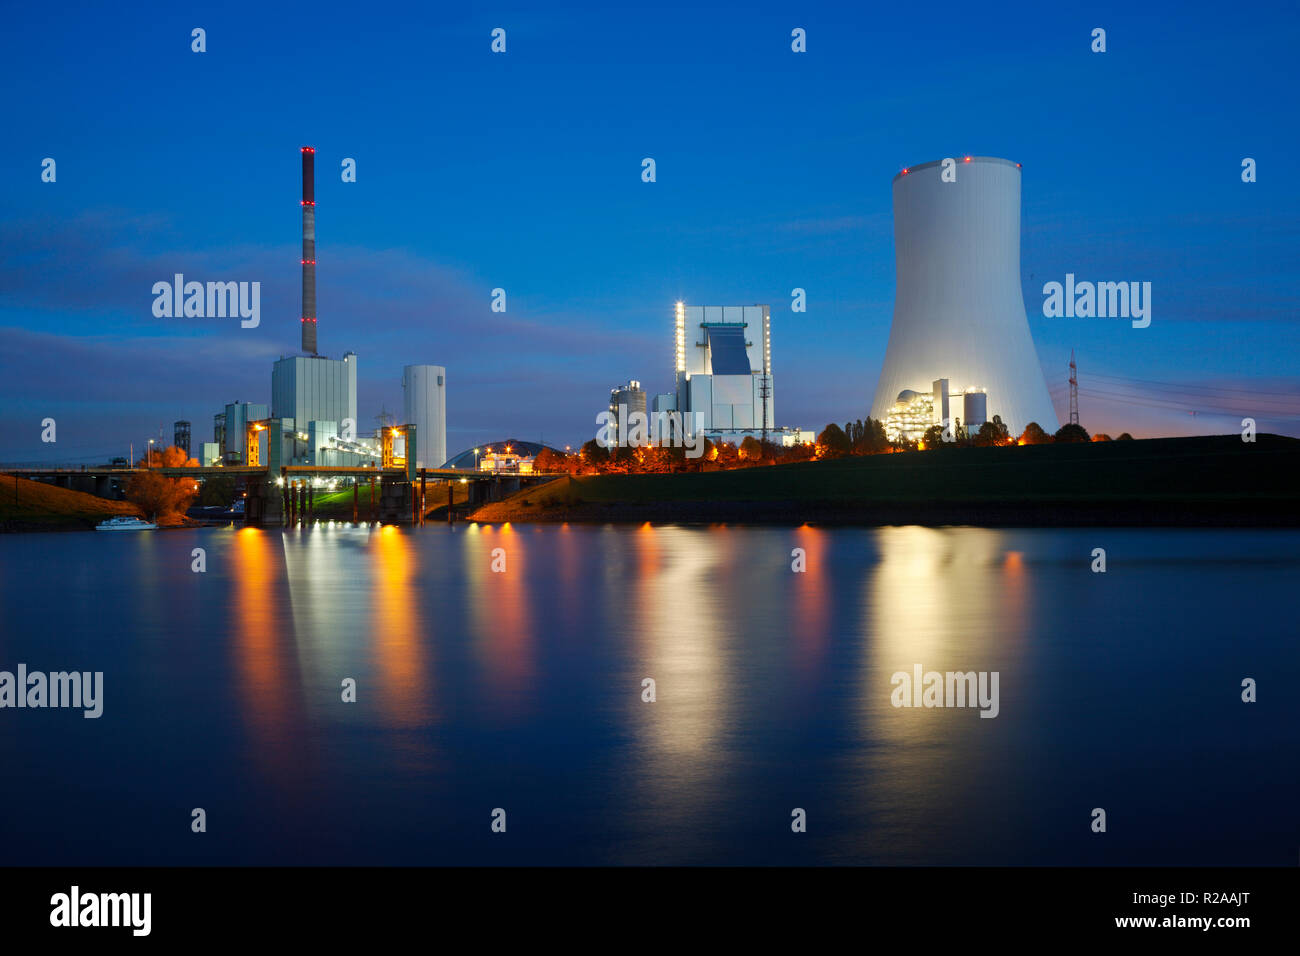 An old and a new coal power station side by side with reflection in the water and night blue sky. - Stock Image